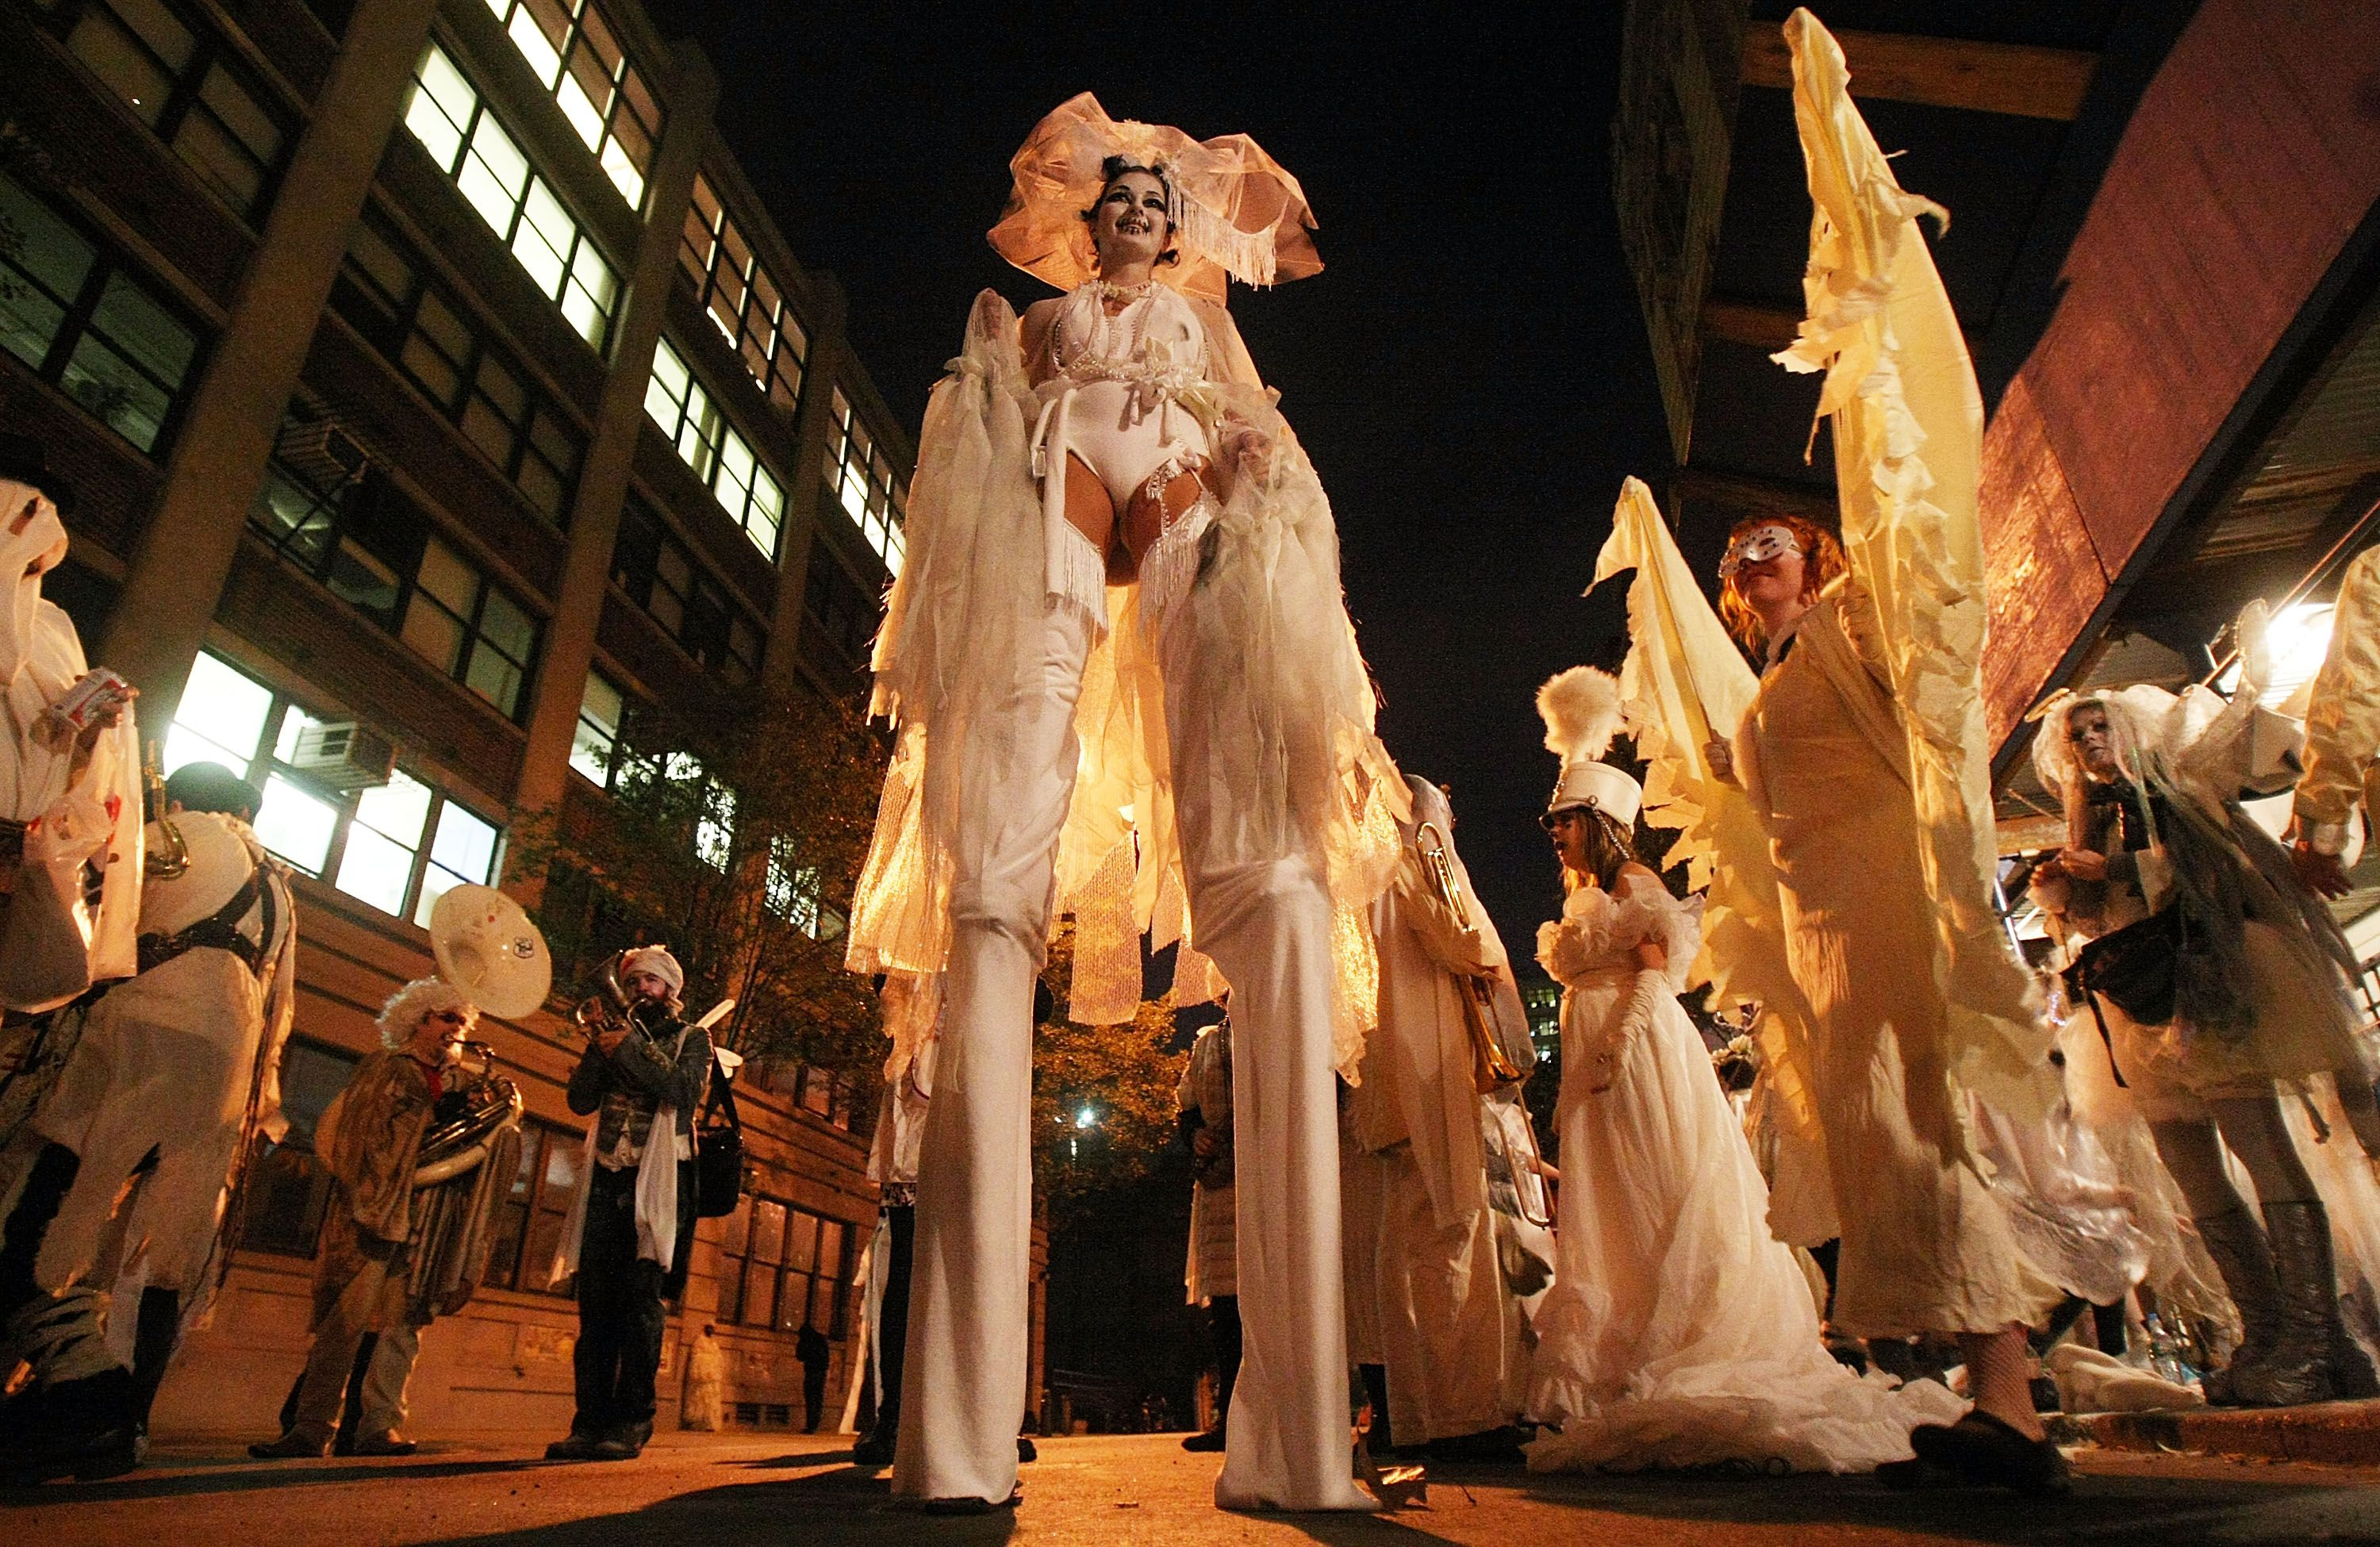 Top 5 things to do in nyc in october for Things to do in nyc evening